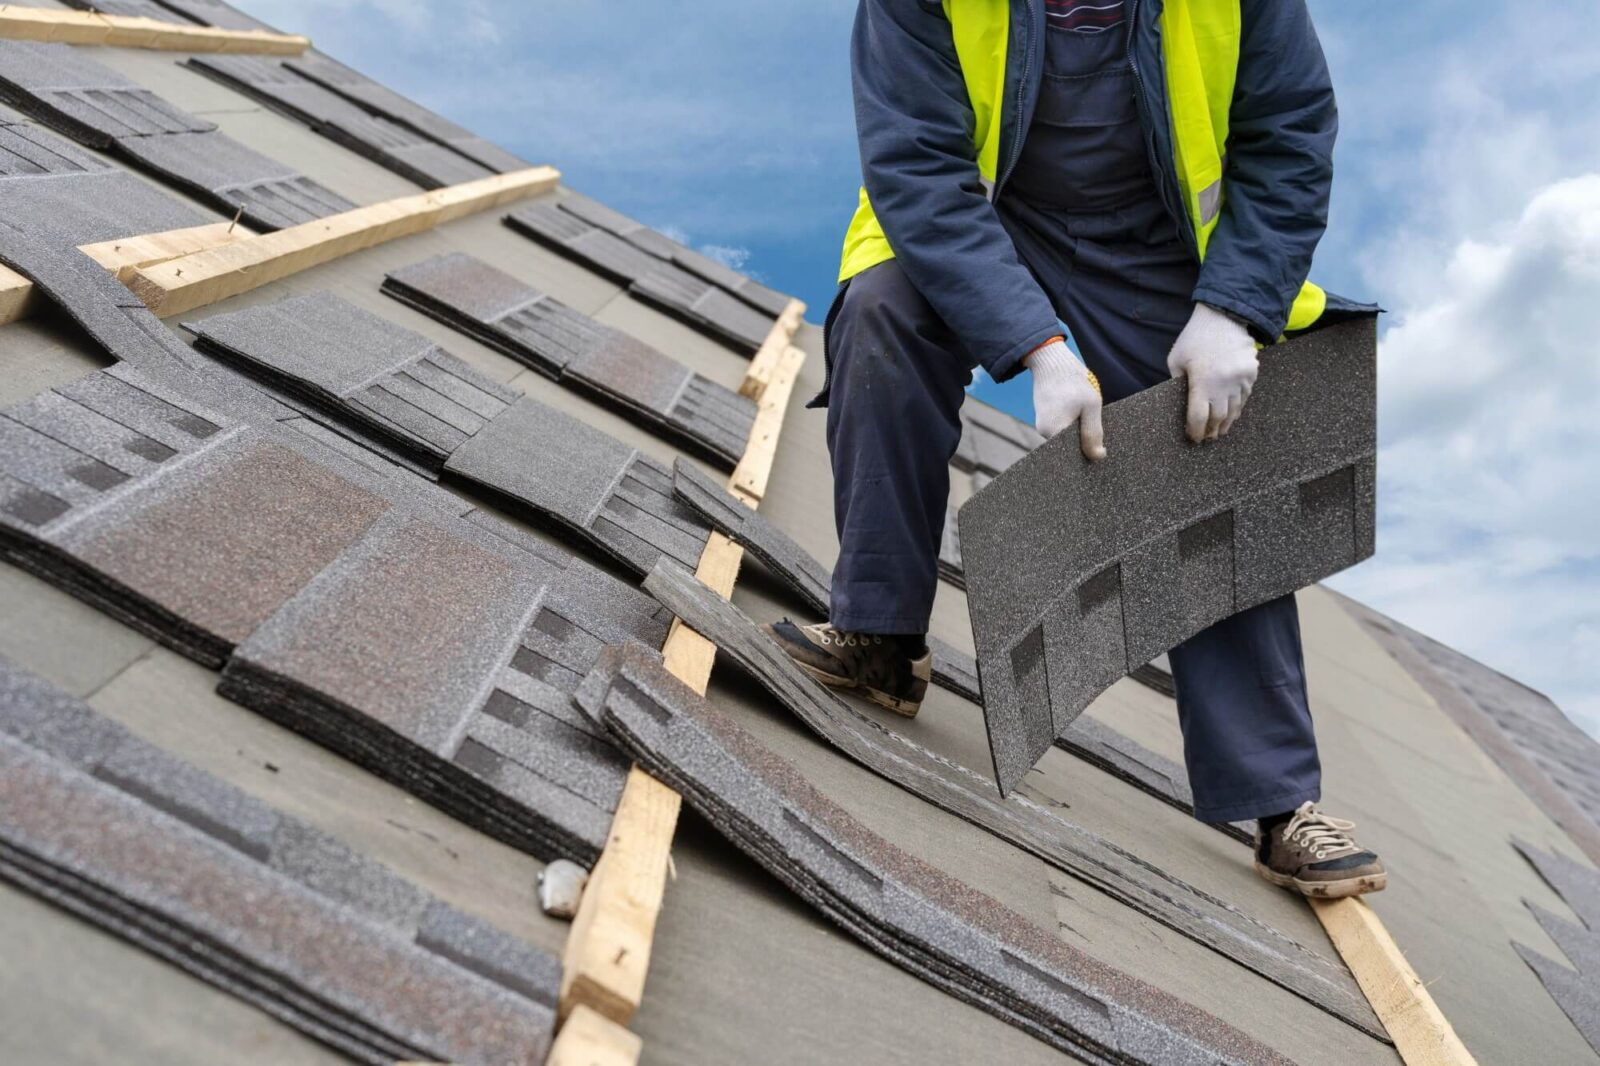 Top Roof Restoration Tips Every Homeowner Should Know About to Avoid Wasting Time, Effort, and Money